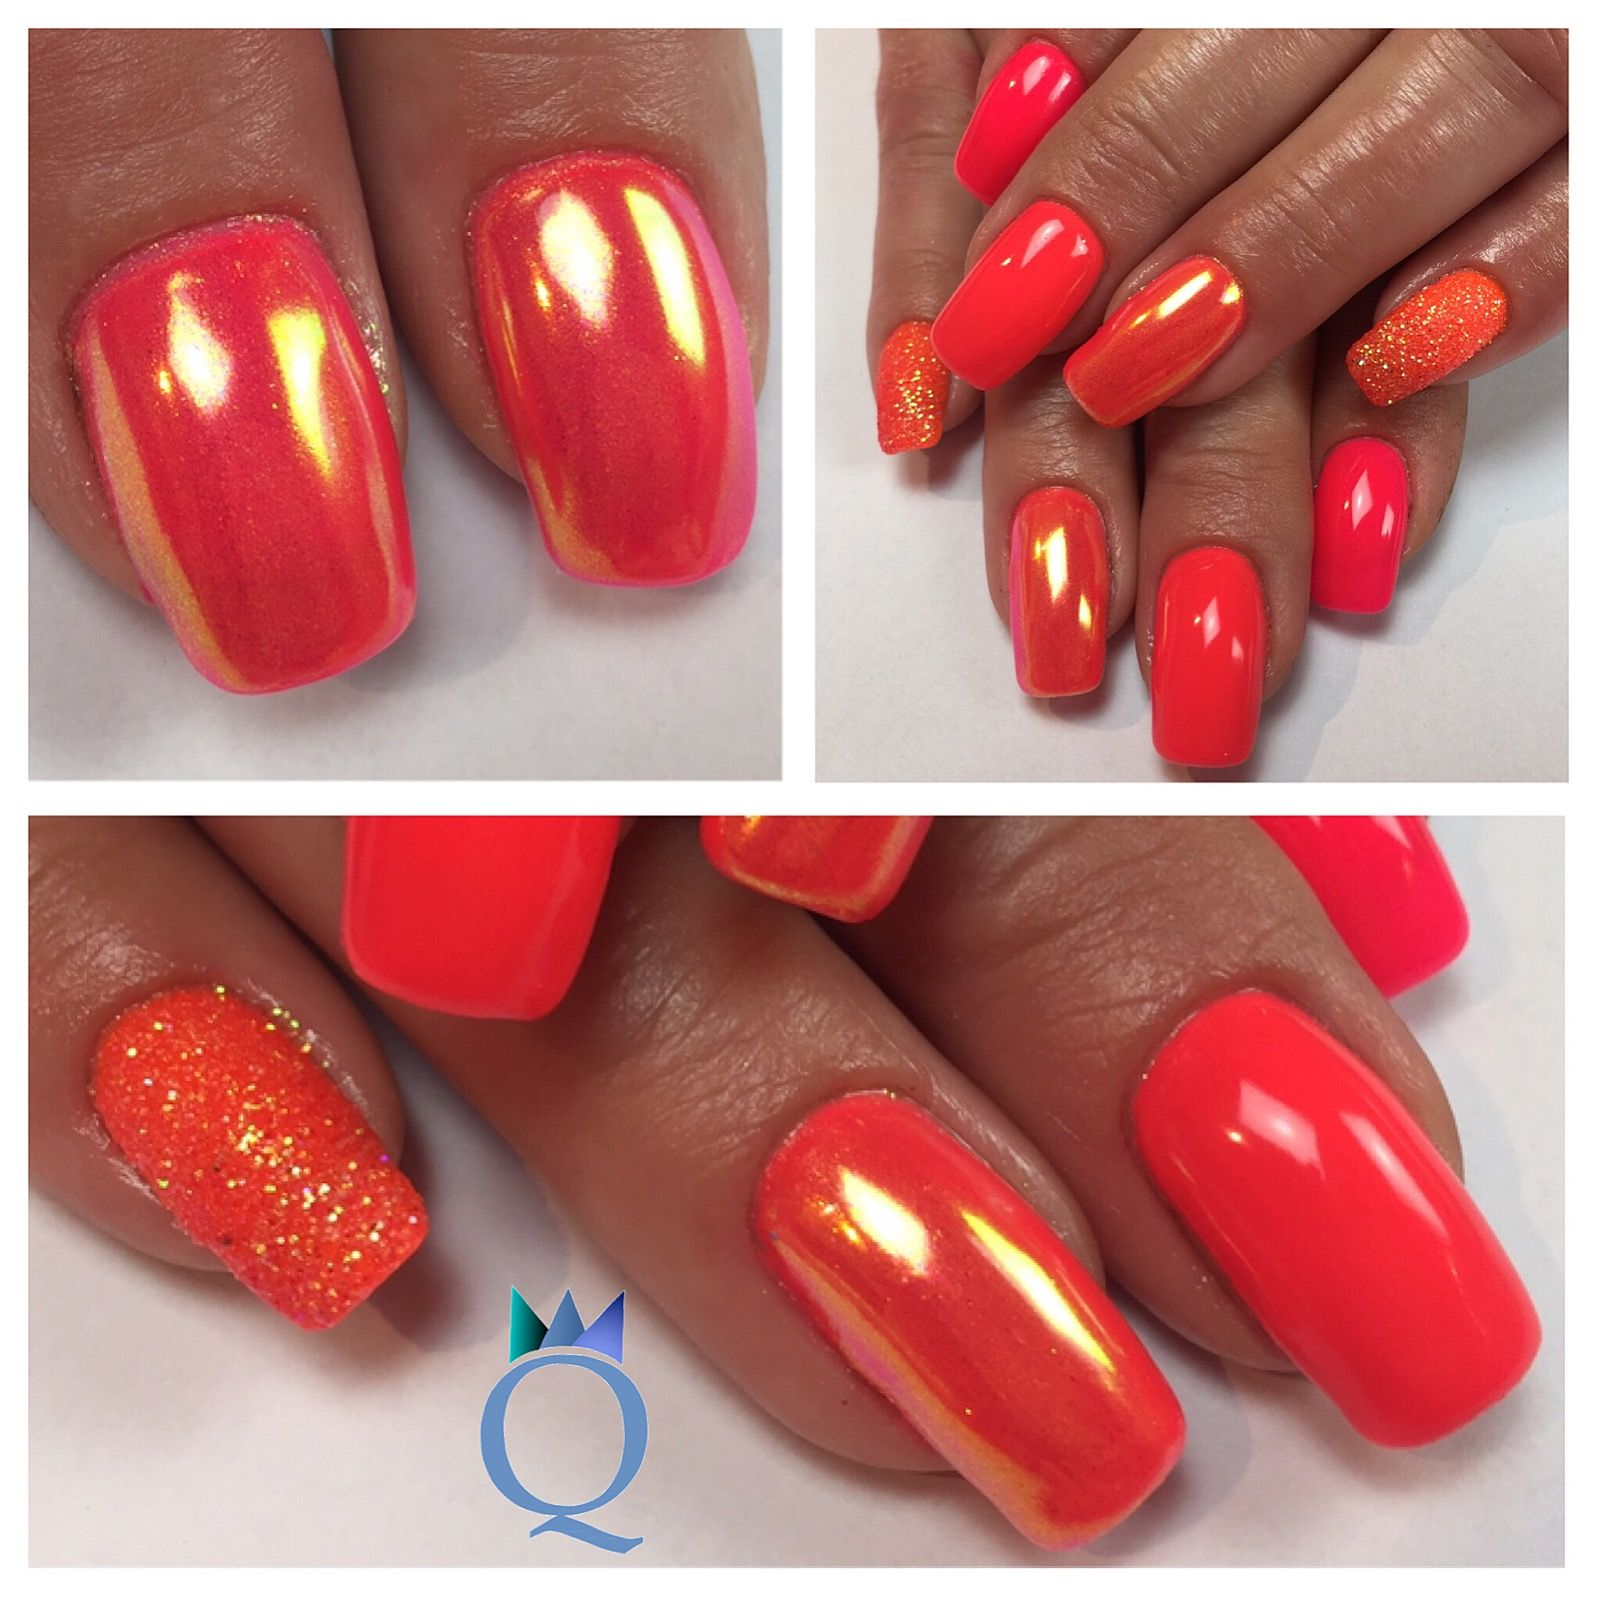 gelnails #nails #neonpink #neon #coral #neonorange #glitter #chrome ...